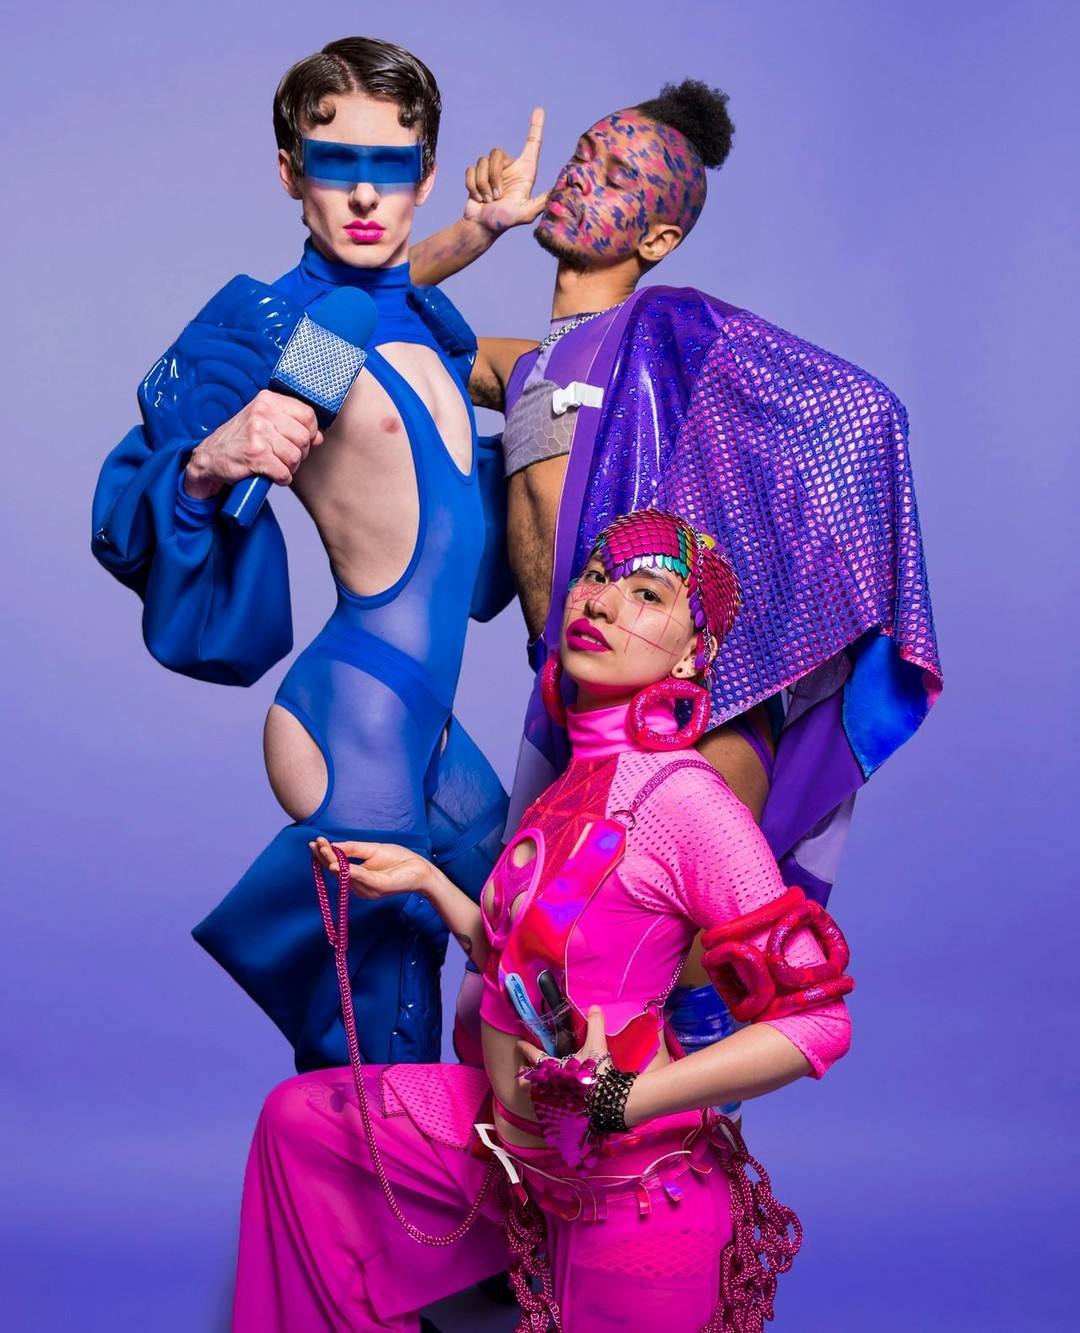 Photo by Colectivo Multipolar  Sky, Jake, and Compton all posing against a purple background . Sky is wearing pink pants, crop top, soft sculpture, and scalemaille hand piece and head piece. Jake is wearing a blue jumpsuit with poofy sleeves and legs and cut-outs at the chest and butt, with a blue microphone and visor. Compton is wearing a purple crop top, leggings, and cape and wearing a face full of pink and blue brush strokes.